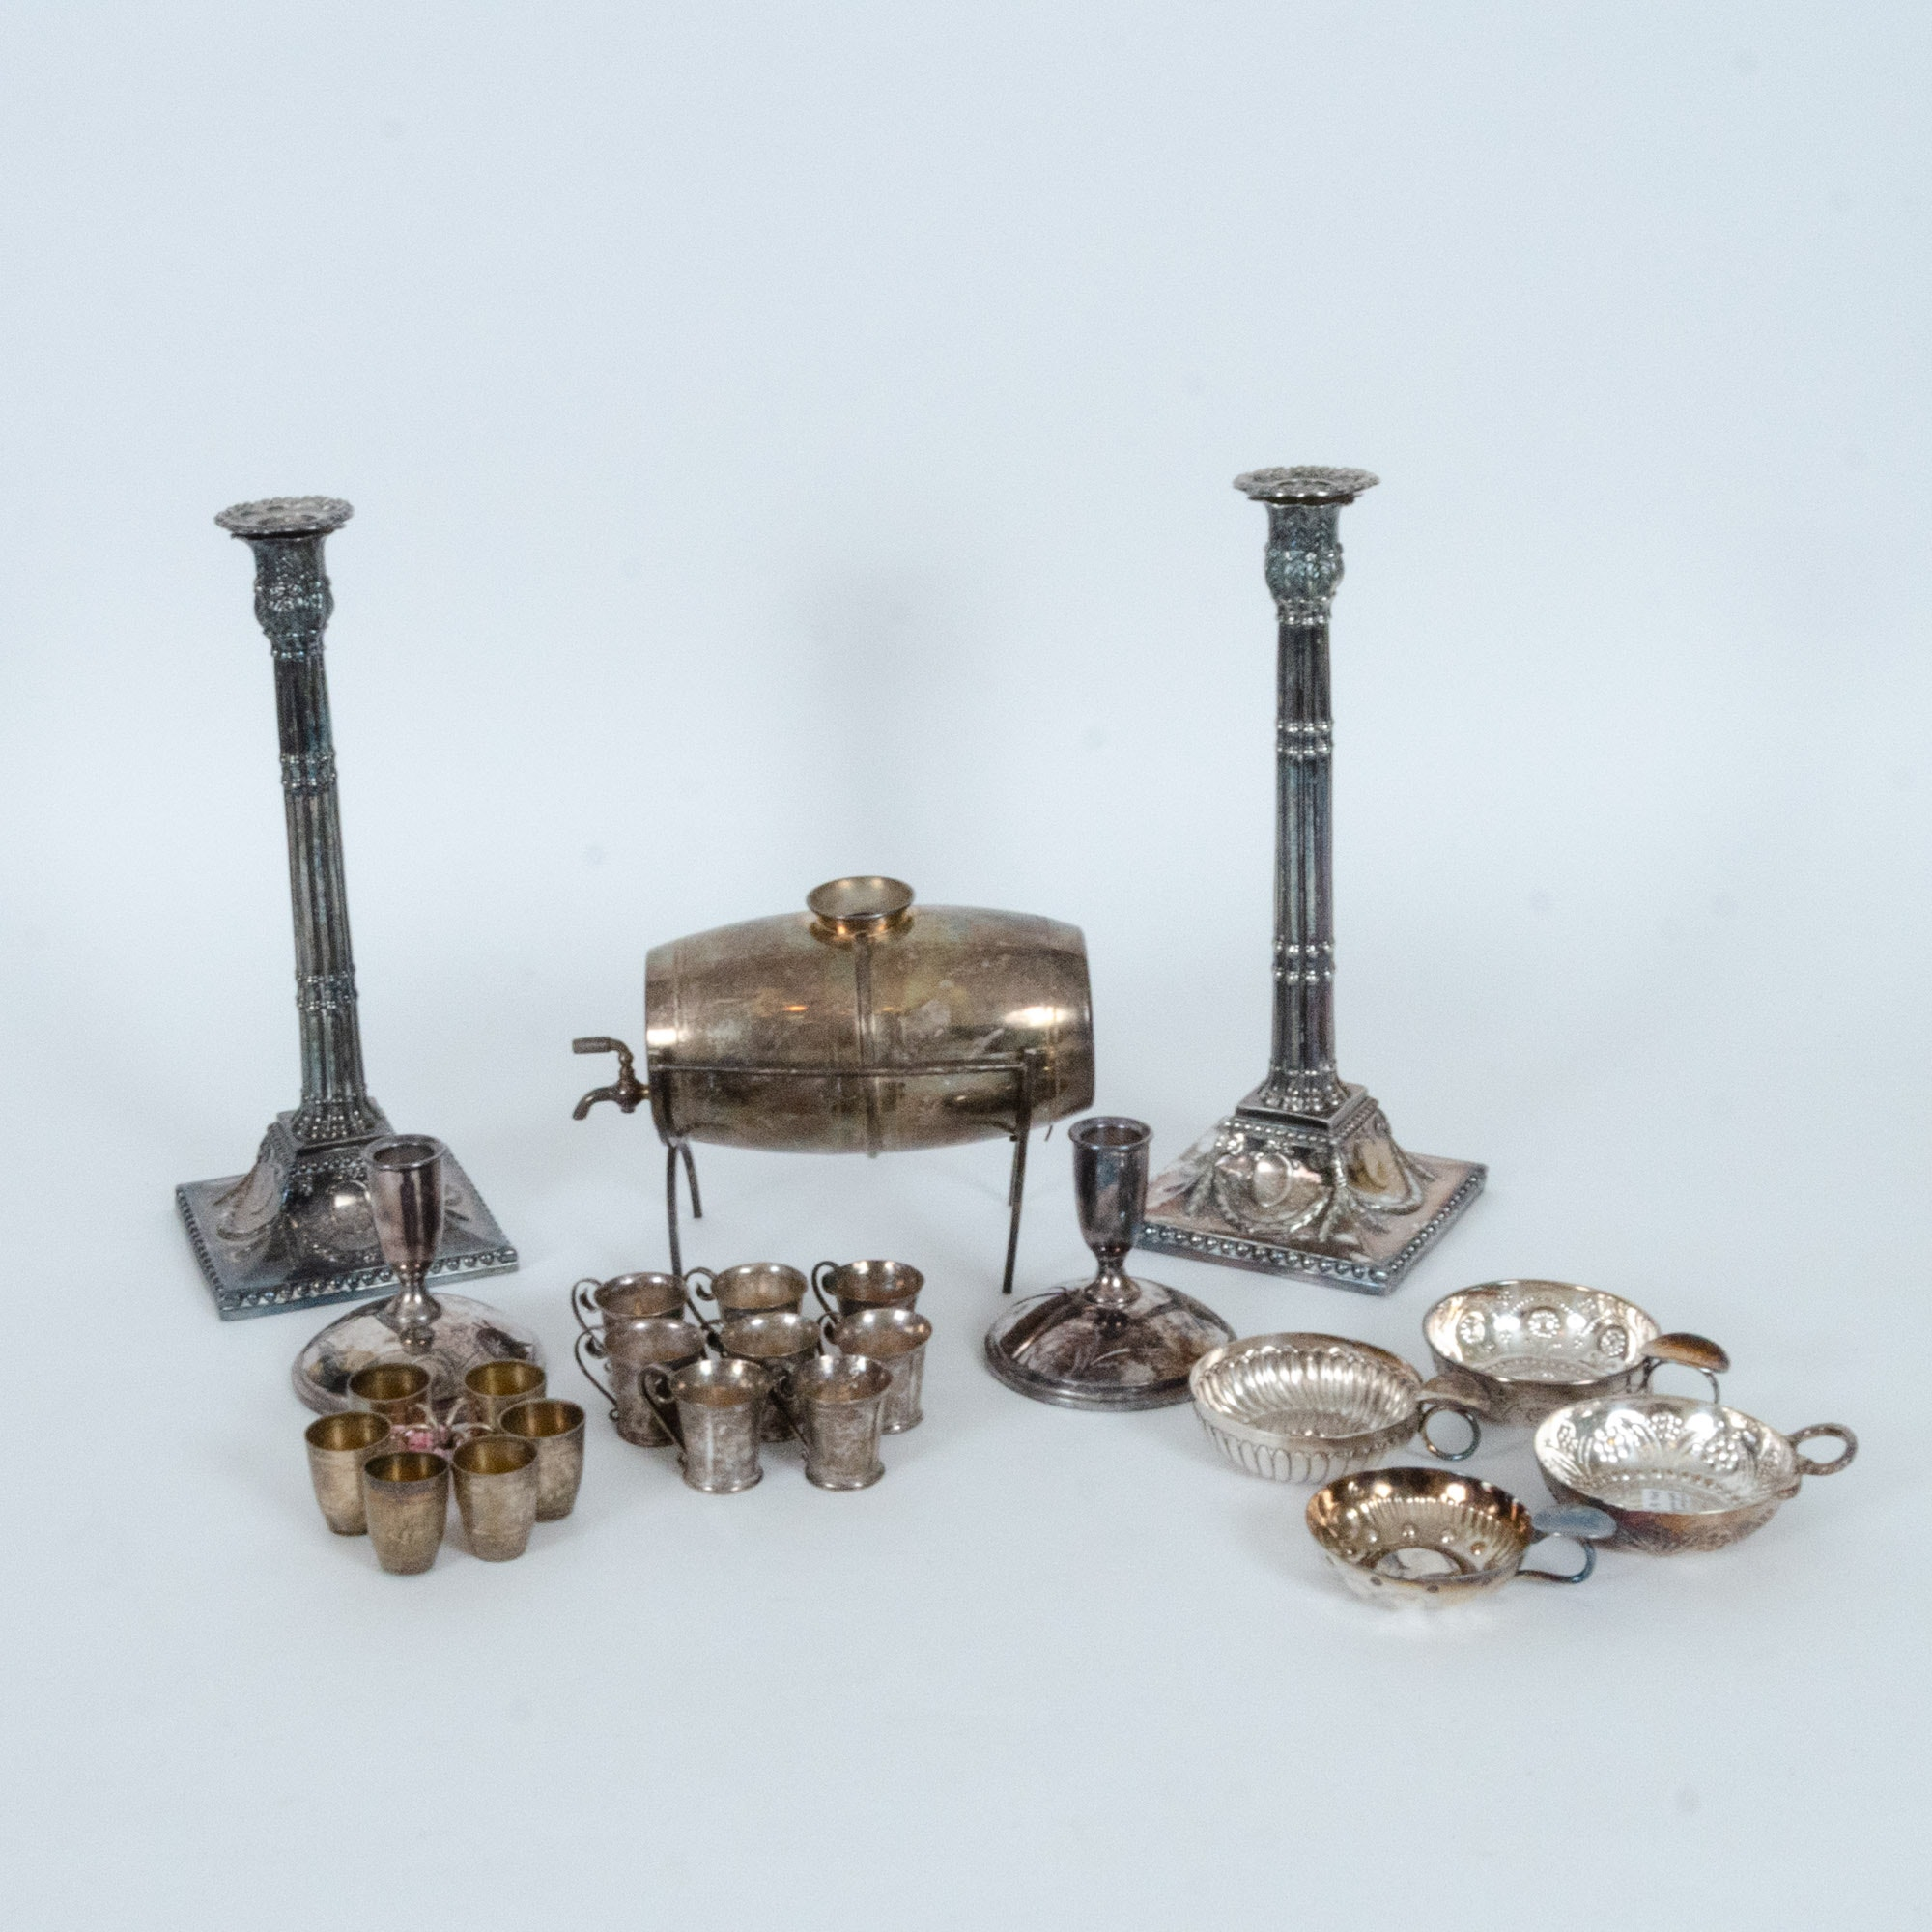 Vintage Silver Plate Serving Pieces and Tableware